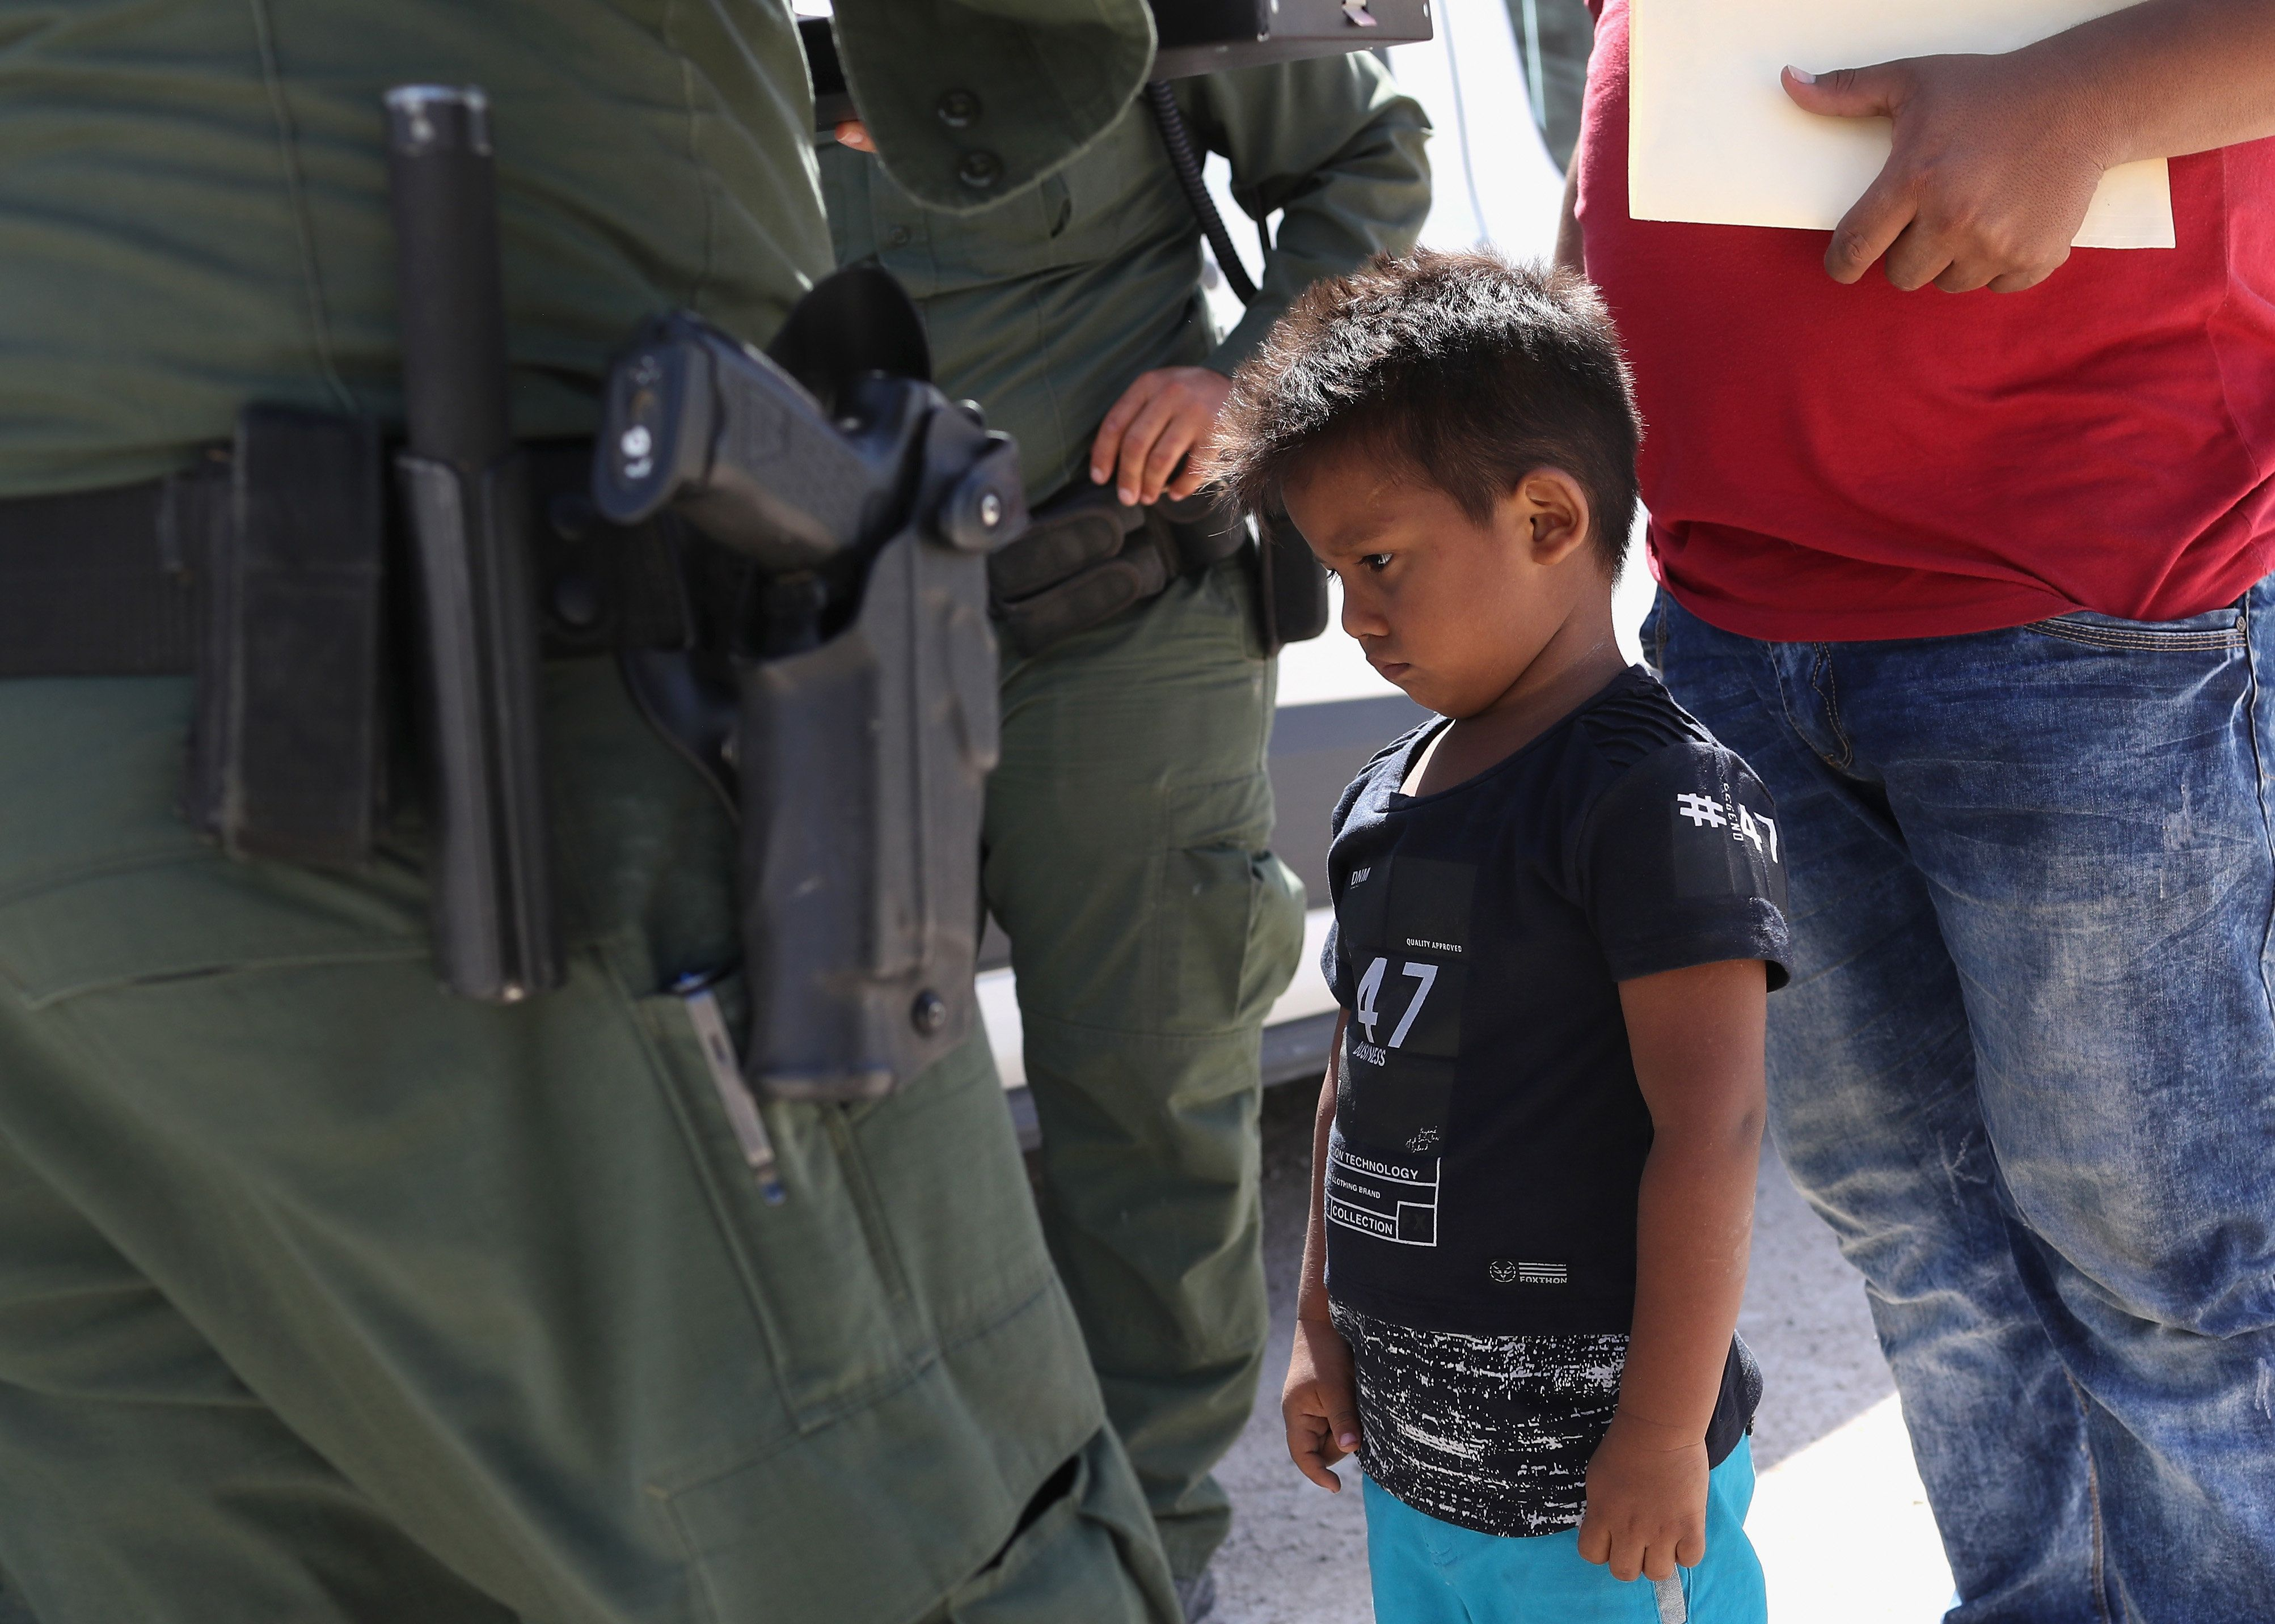 A boy and father from Honduras are taken into custody by U.S. Border Patrol agents near the U.S.-Mexico Border on June 12. Th